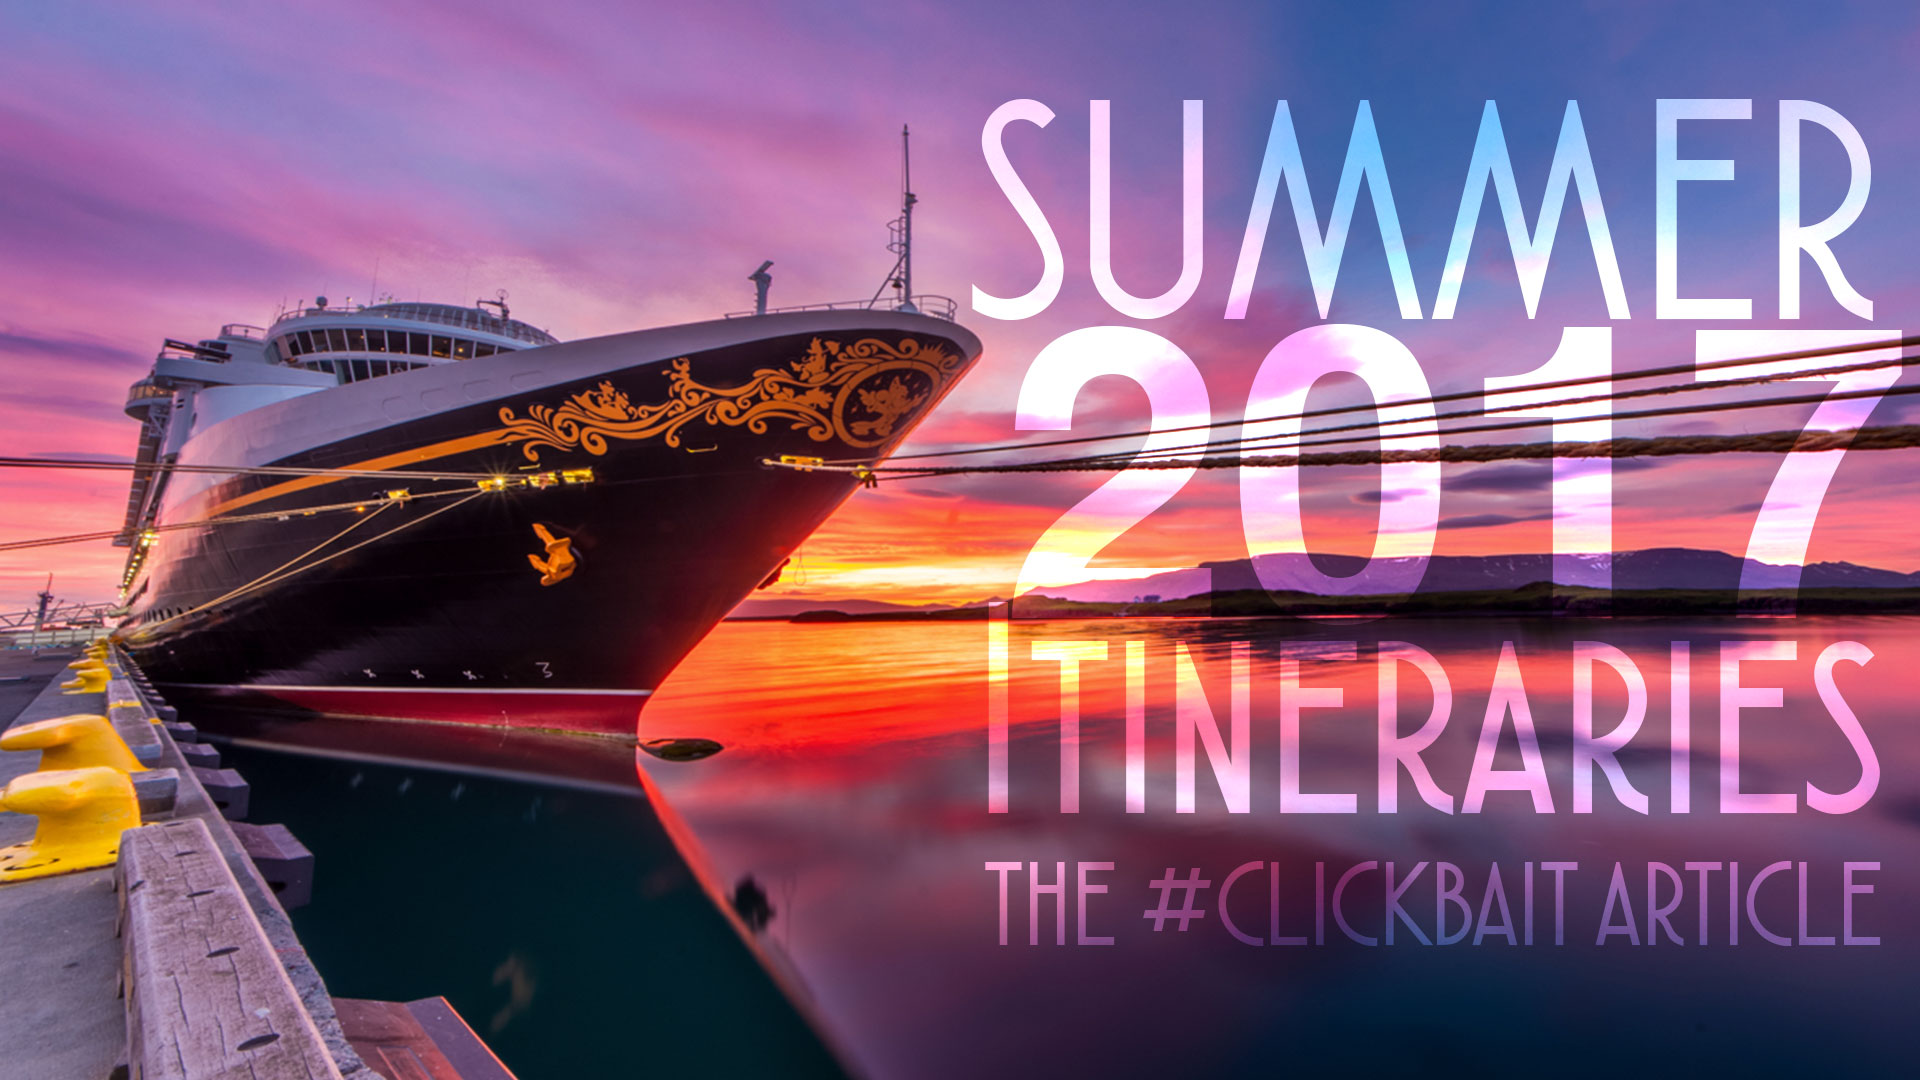 Summer 2017 Itineraries the #Clickbait Article • The ...